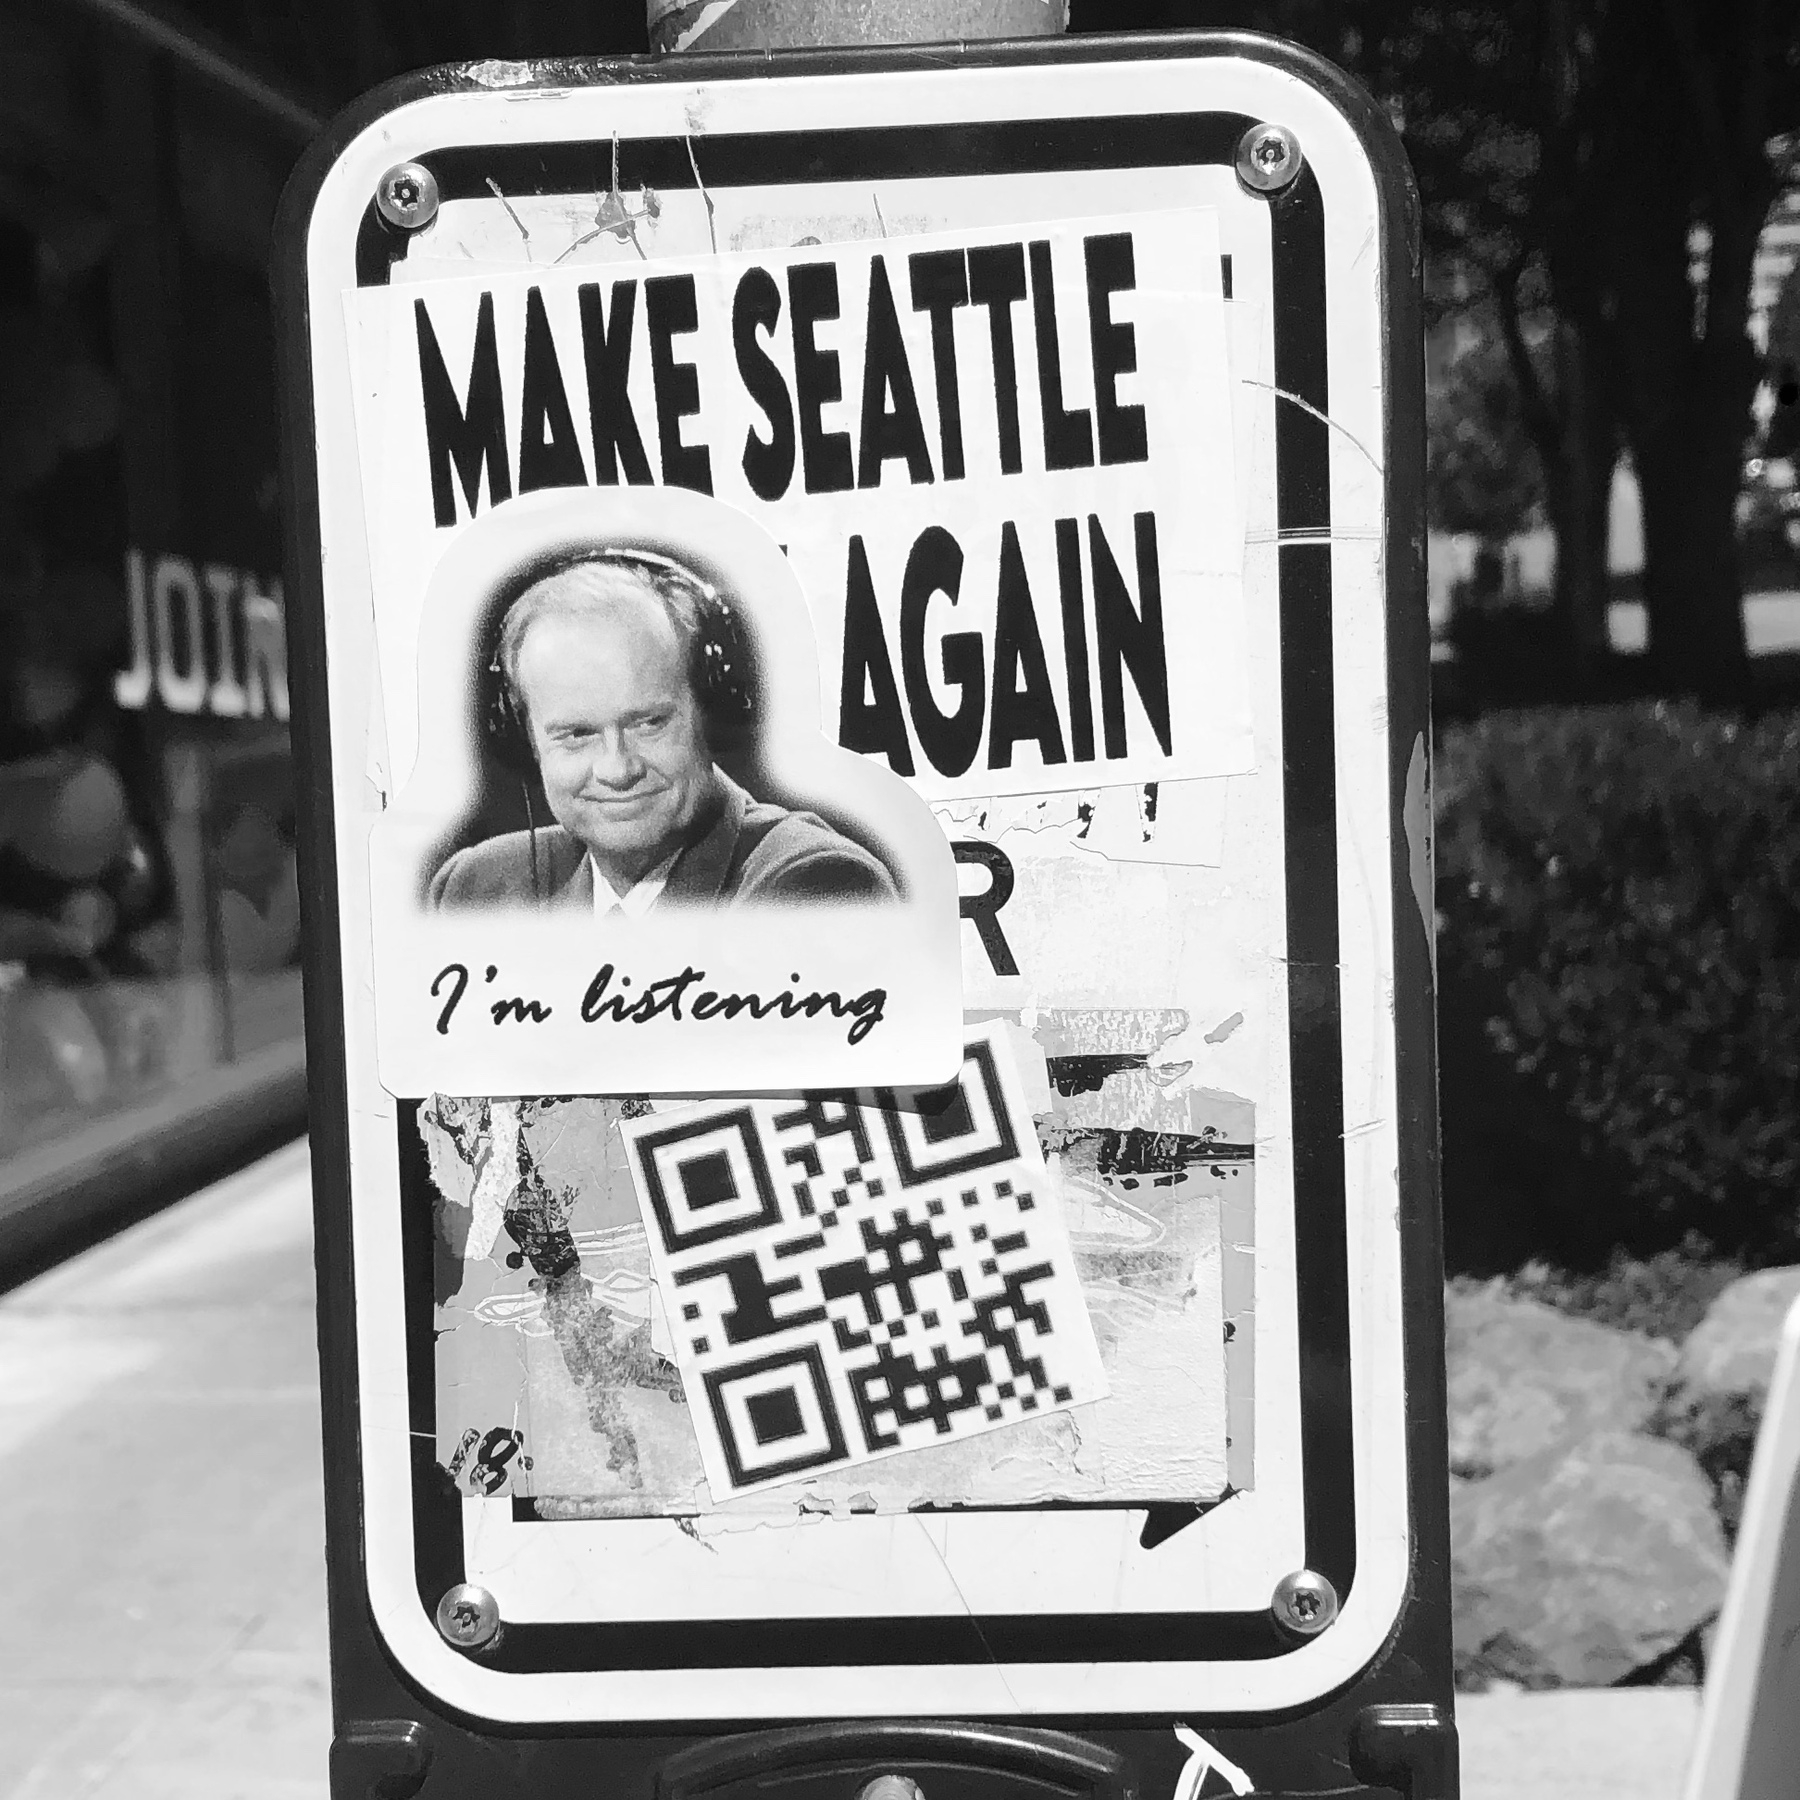 A crosswalk sign covered in graffiti stickers. One is of Frasier Crane and he's saying: I'm listening...